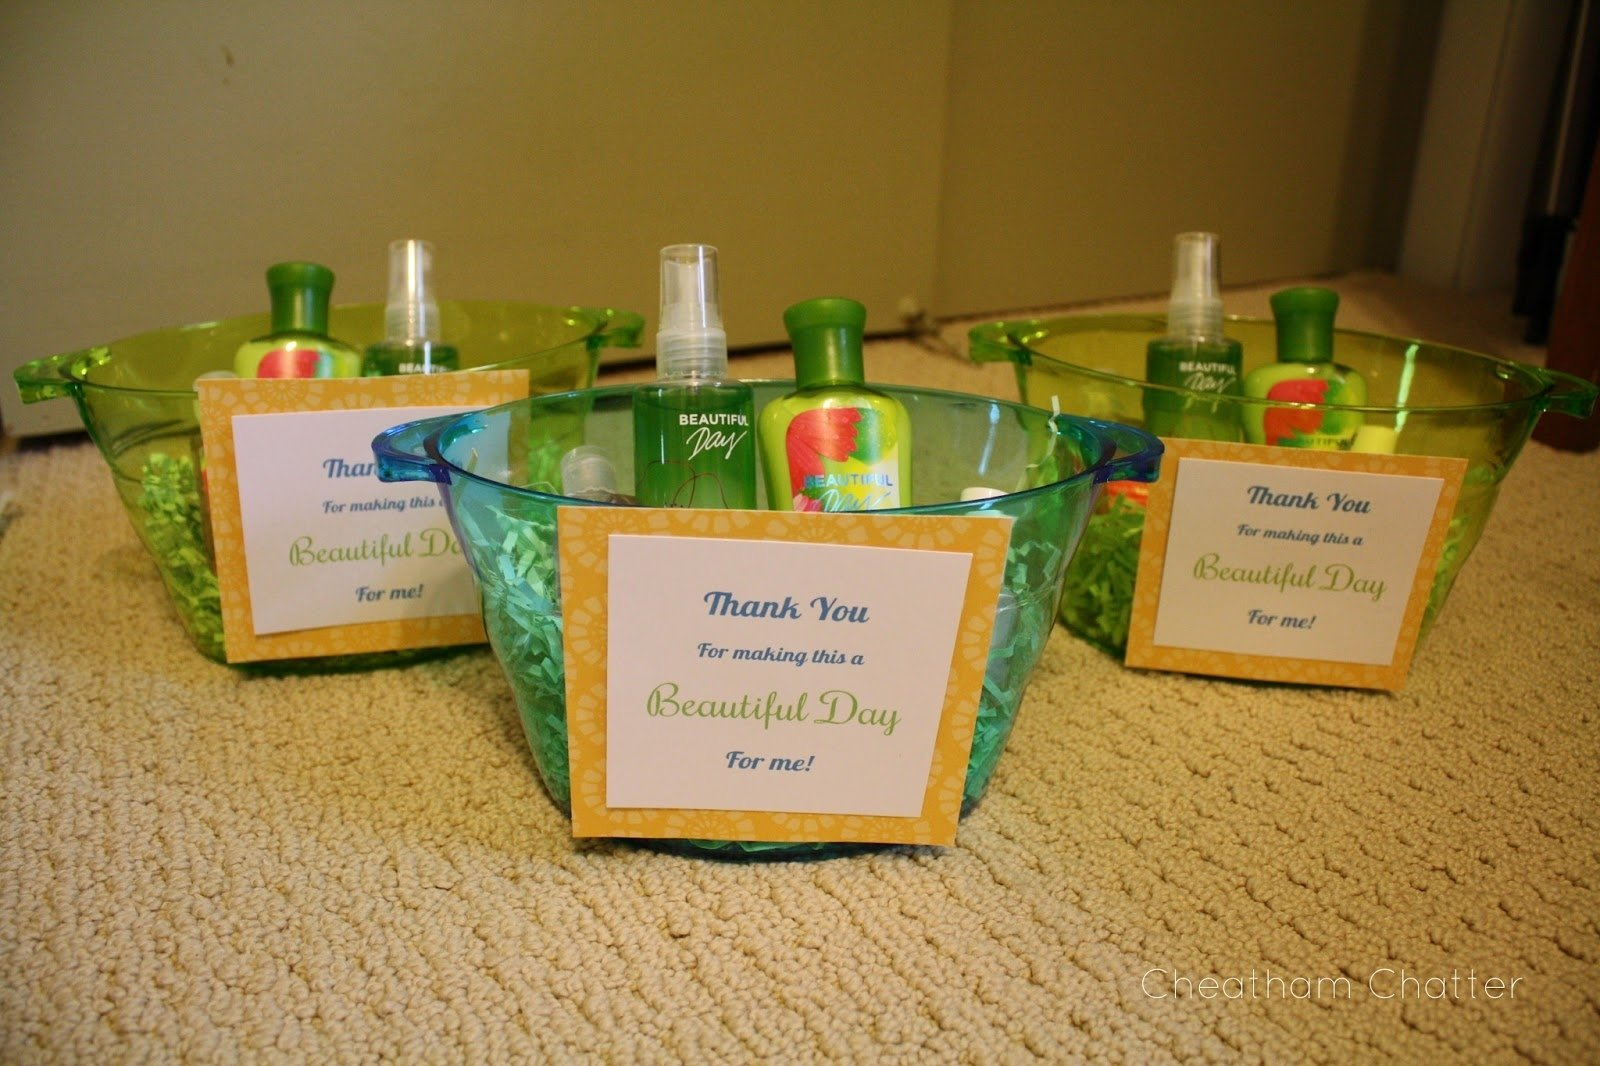 10 Famous Bridal Shower Hostess Gift Ideas cheatham chatter baby shower favors hostess gifts 2 2020